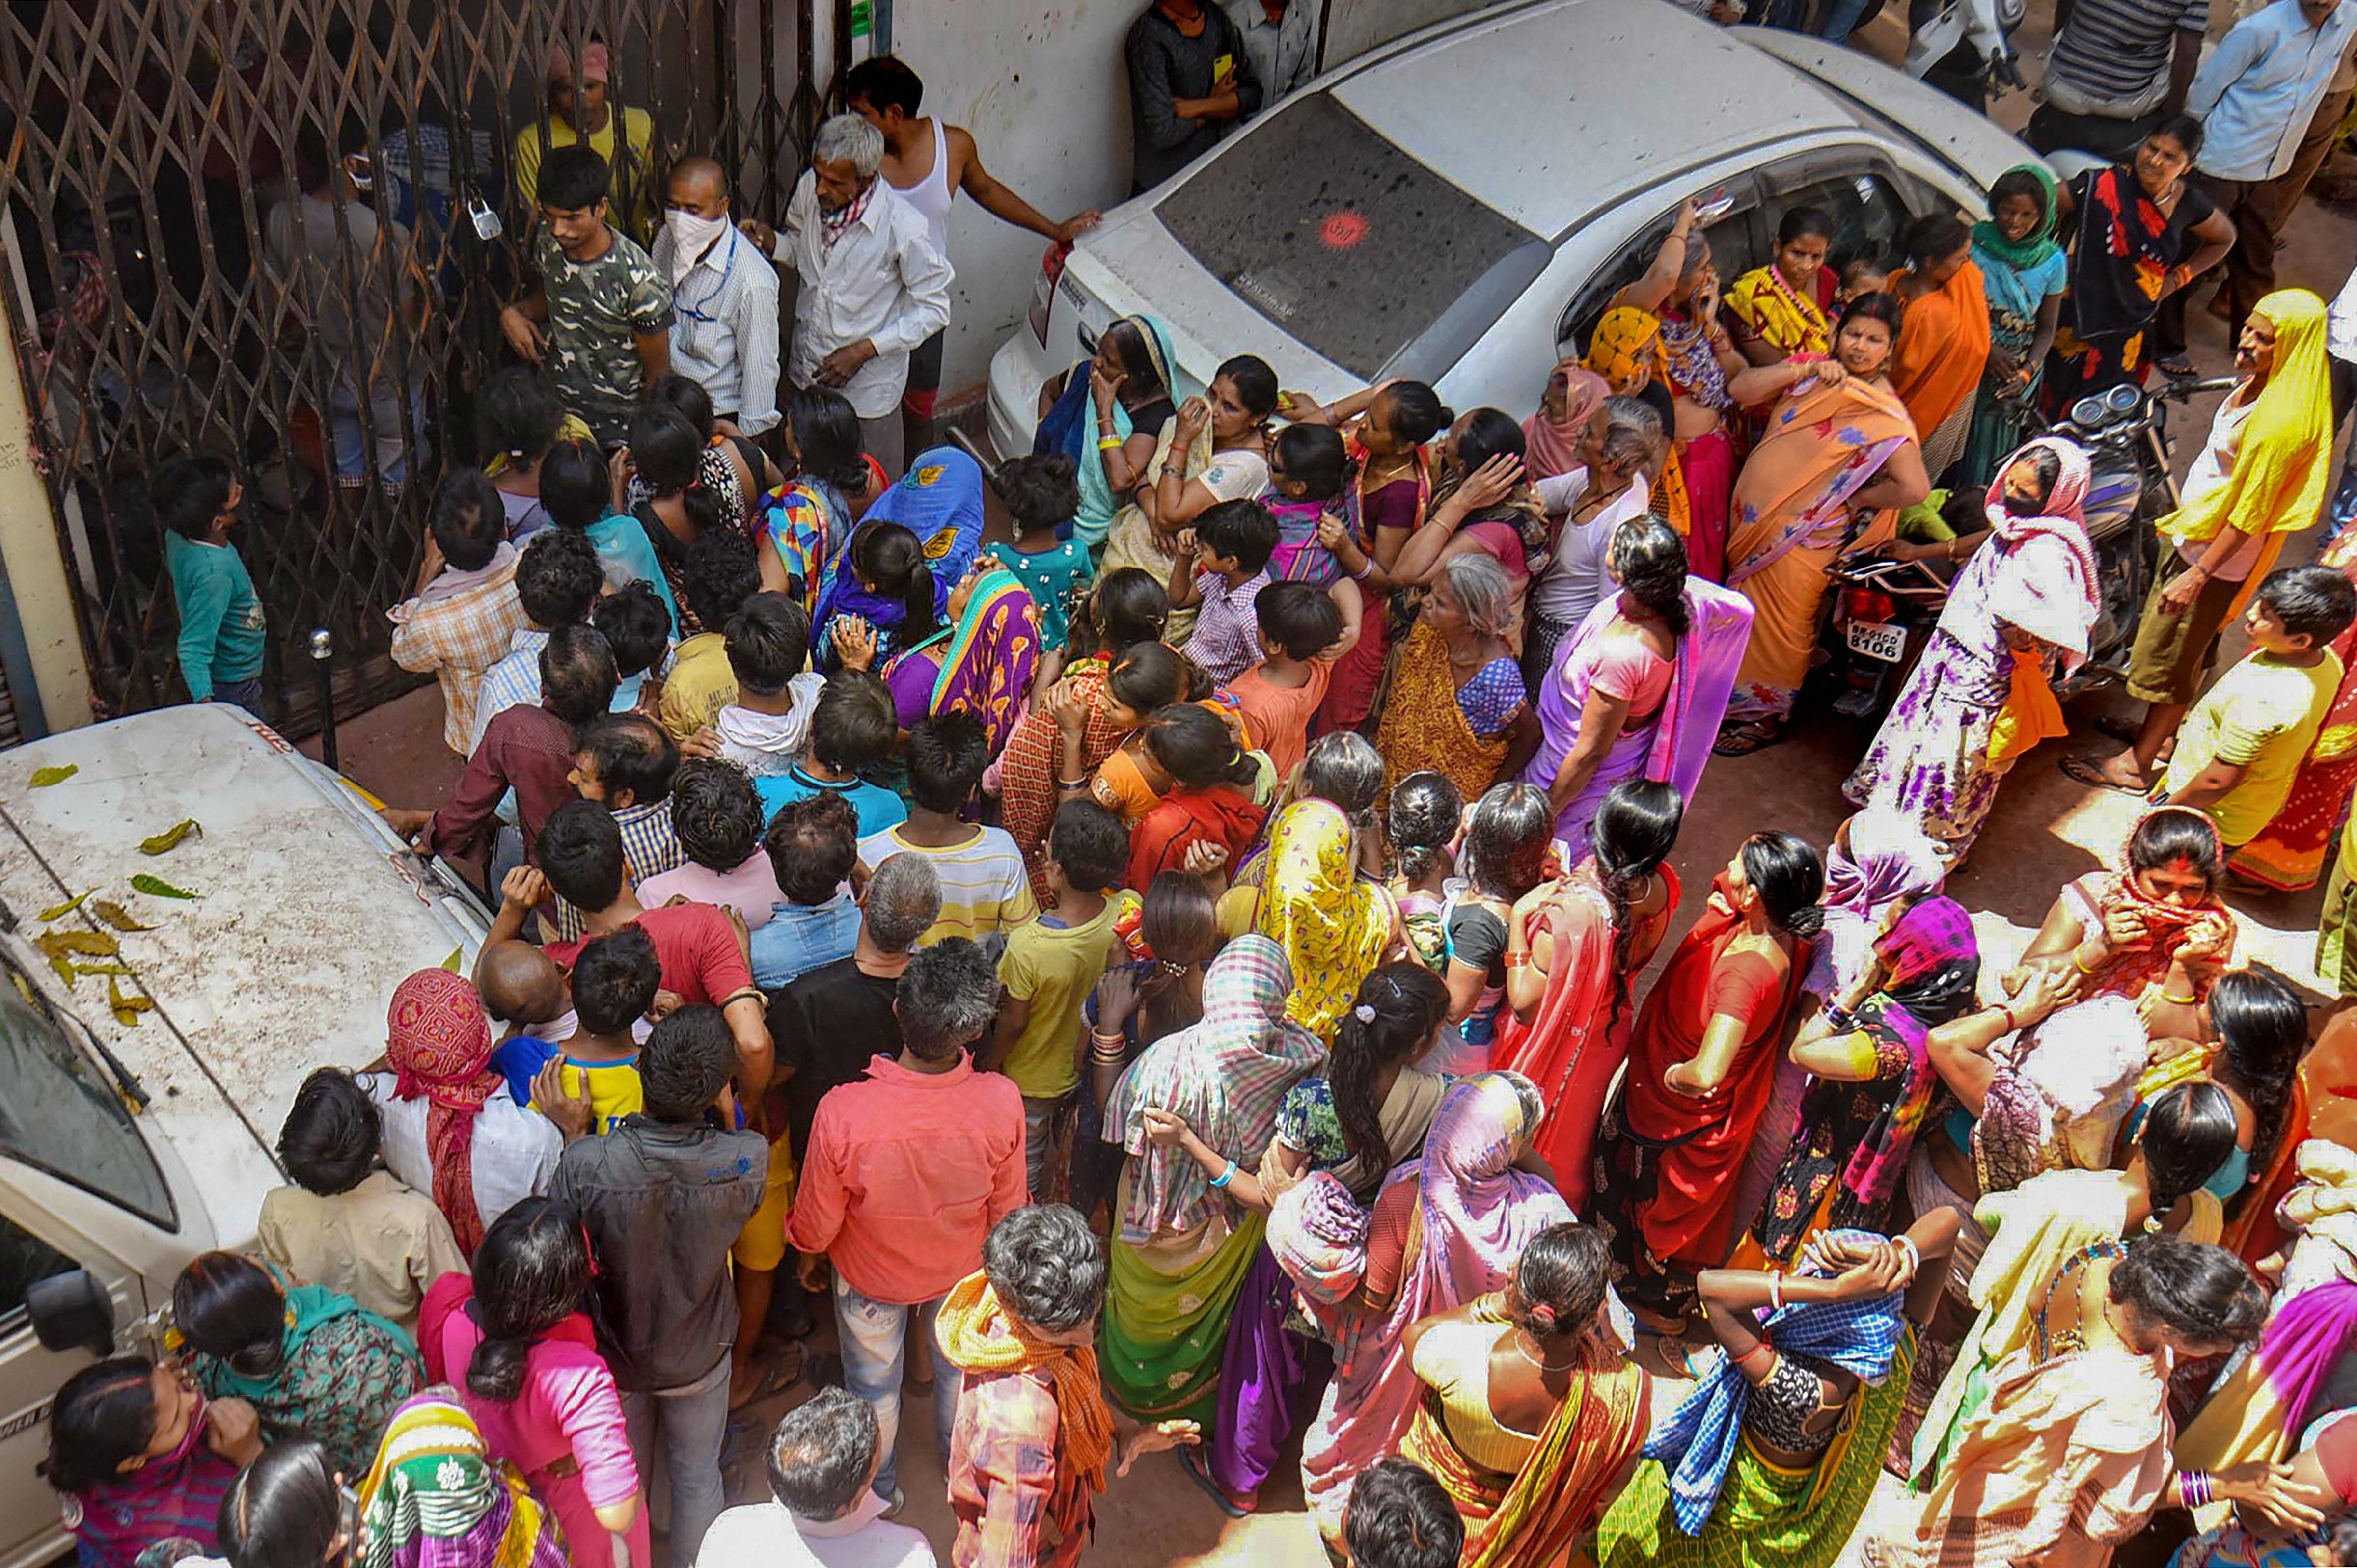 People gather outside ration distribution center to collect food items during a nationwide lockdown in the wake of the coronavirus pandemic in Patna